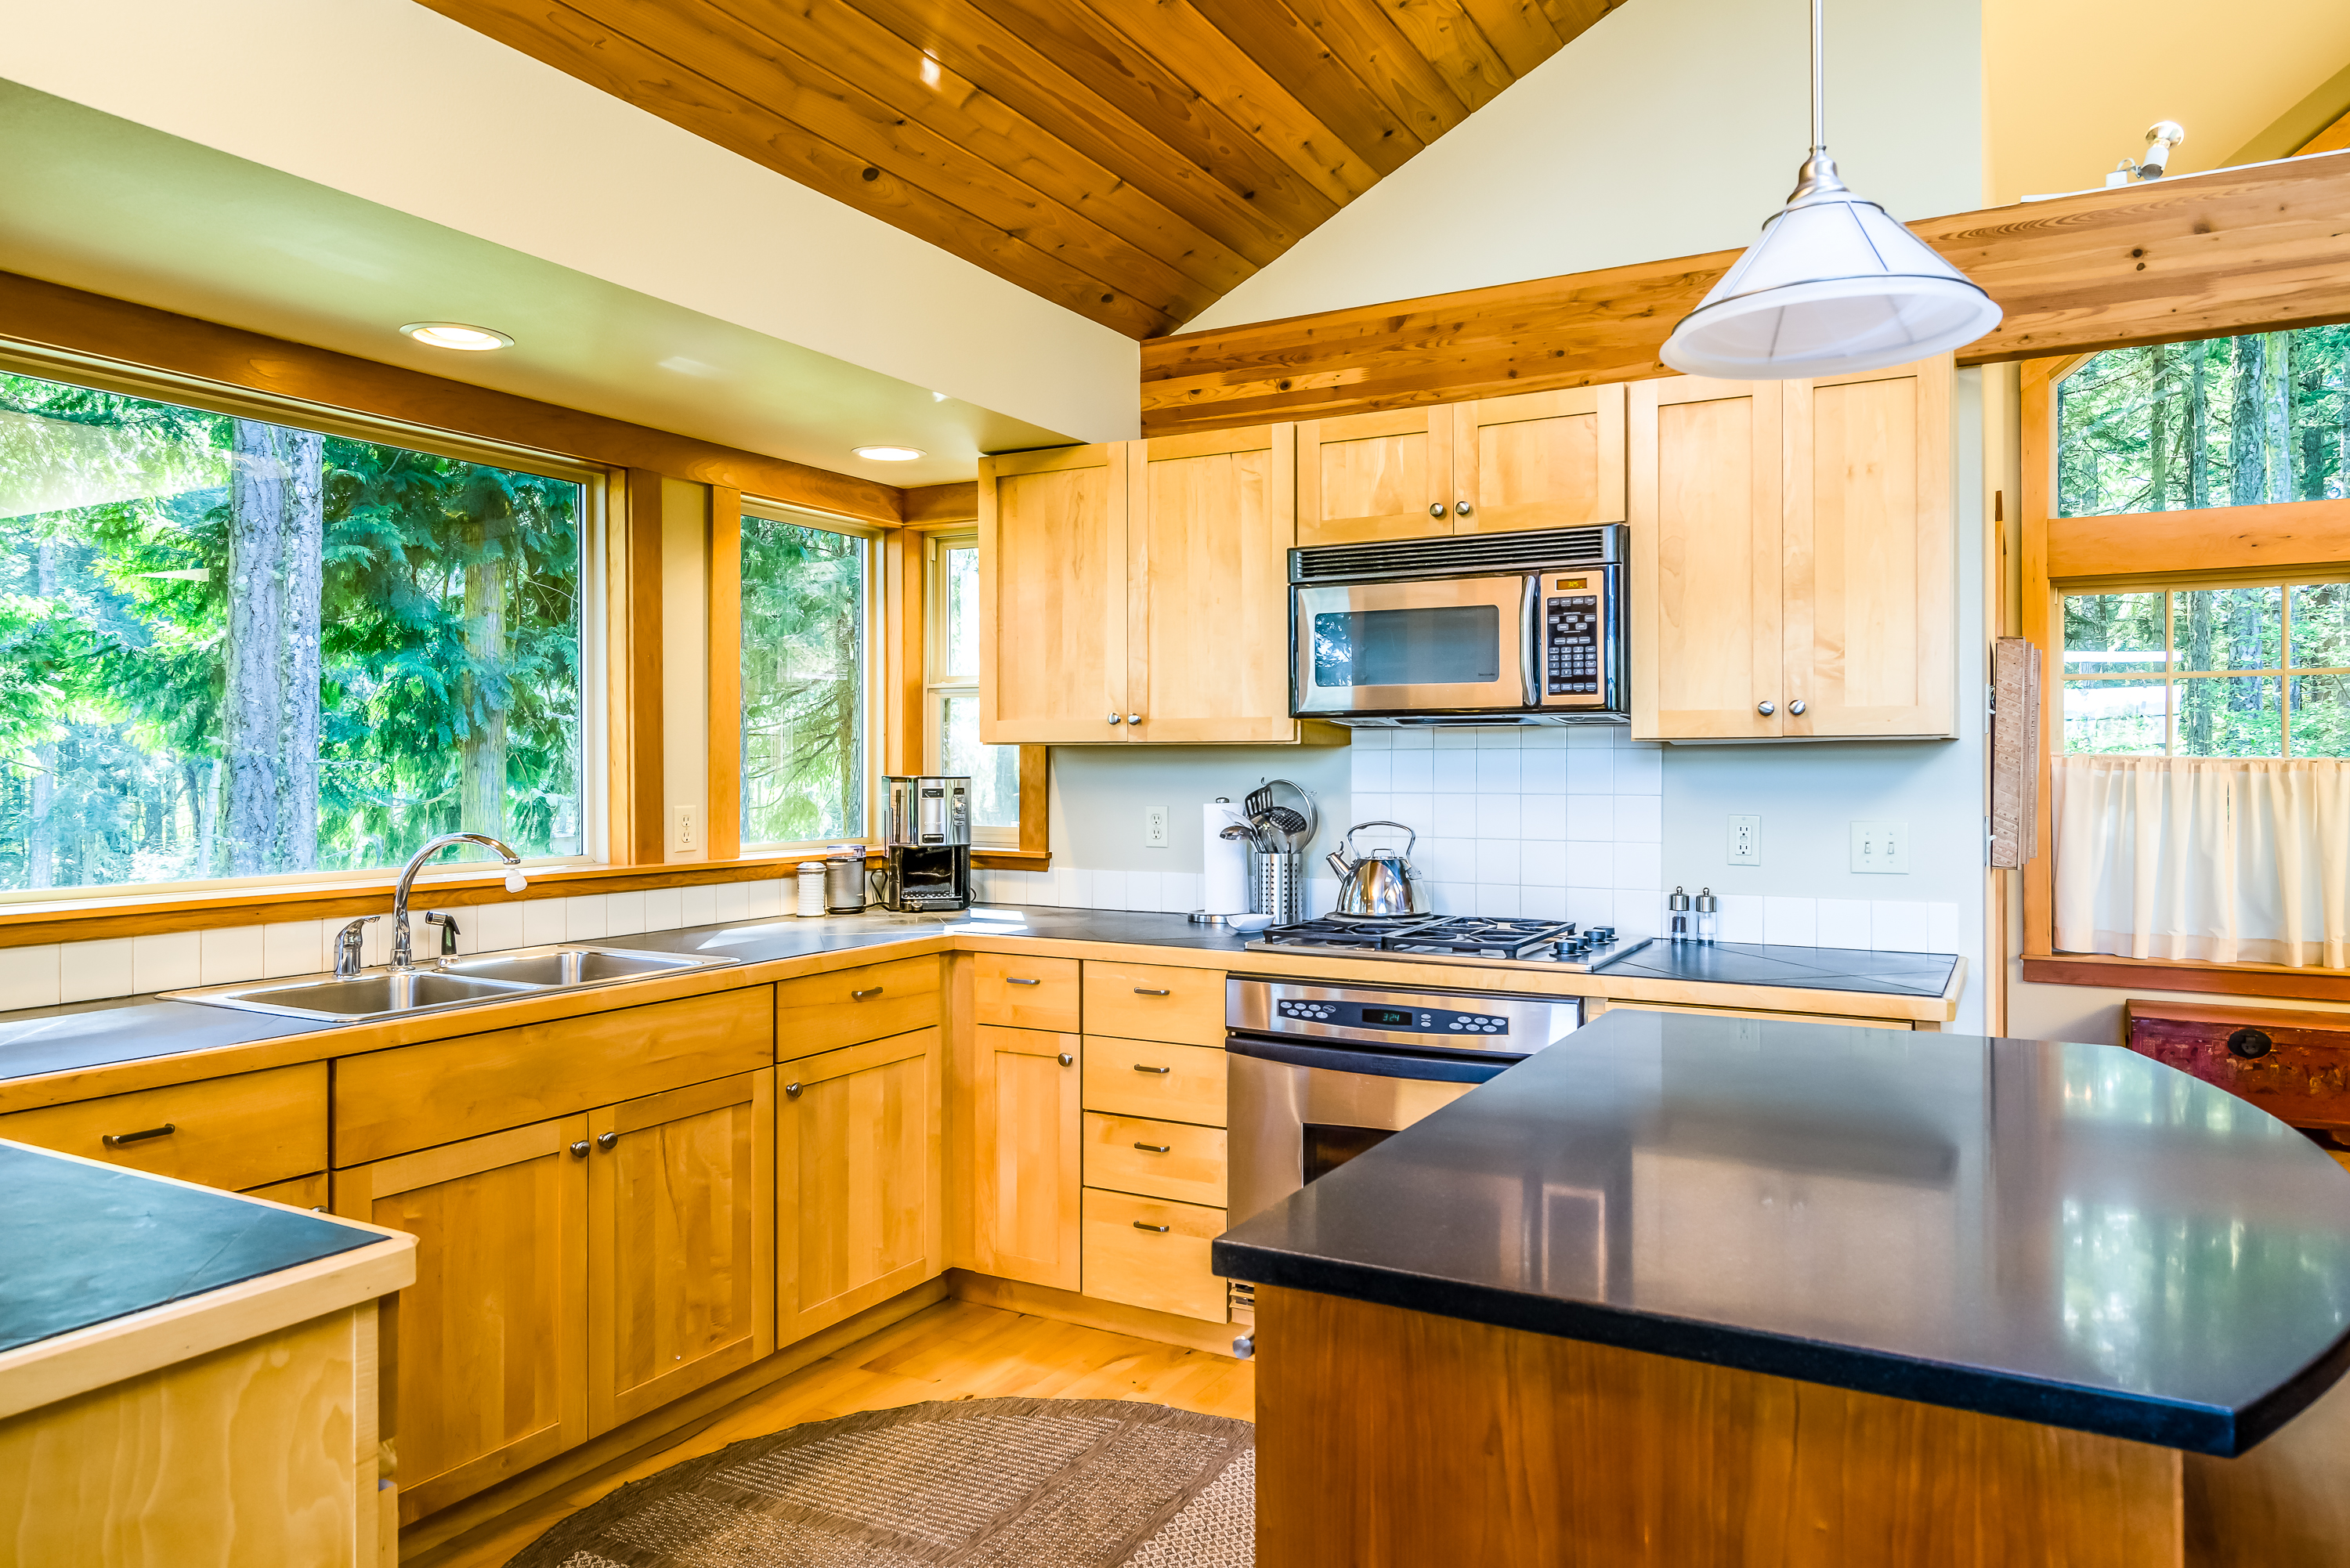 139 Suntides Ln - Lopez Island, Washington